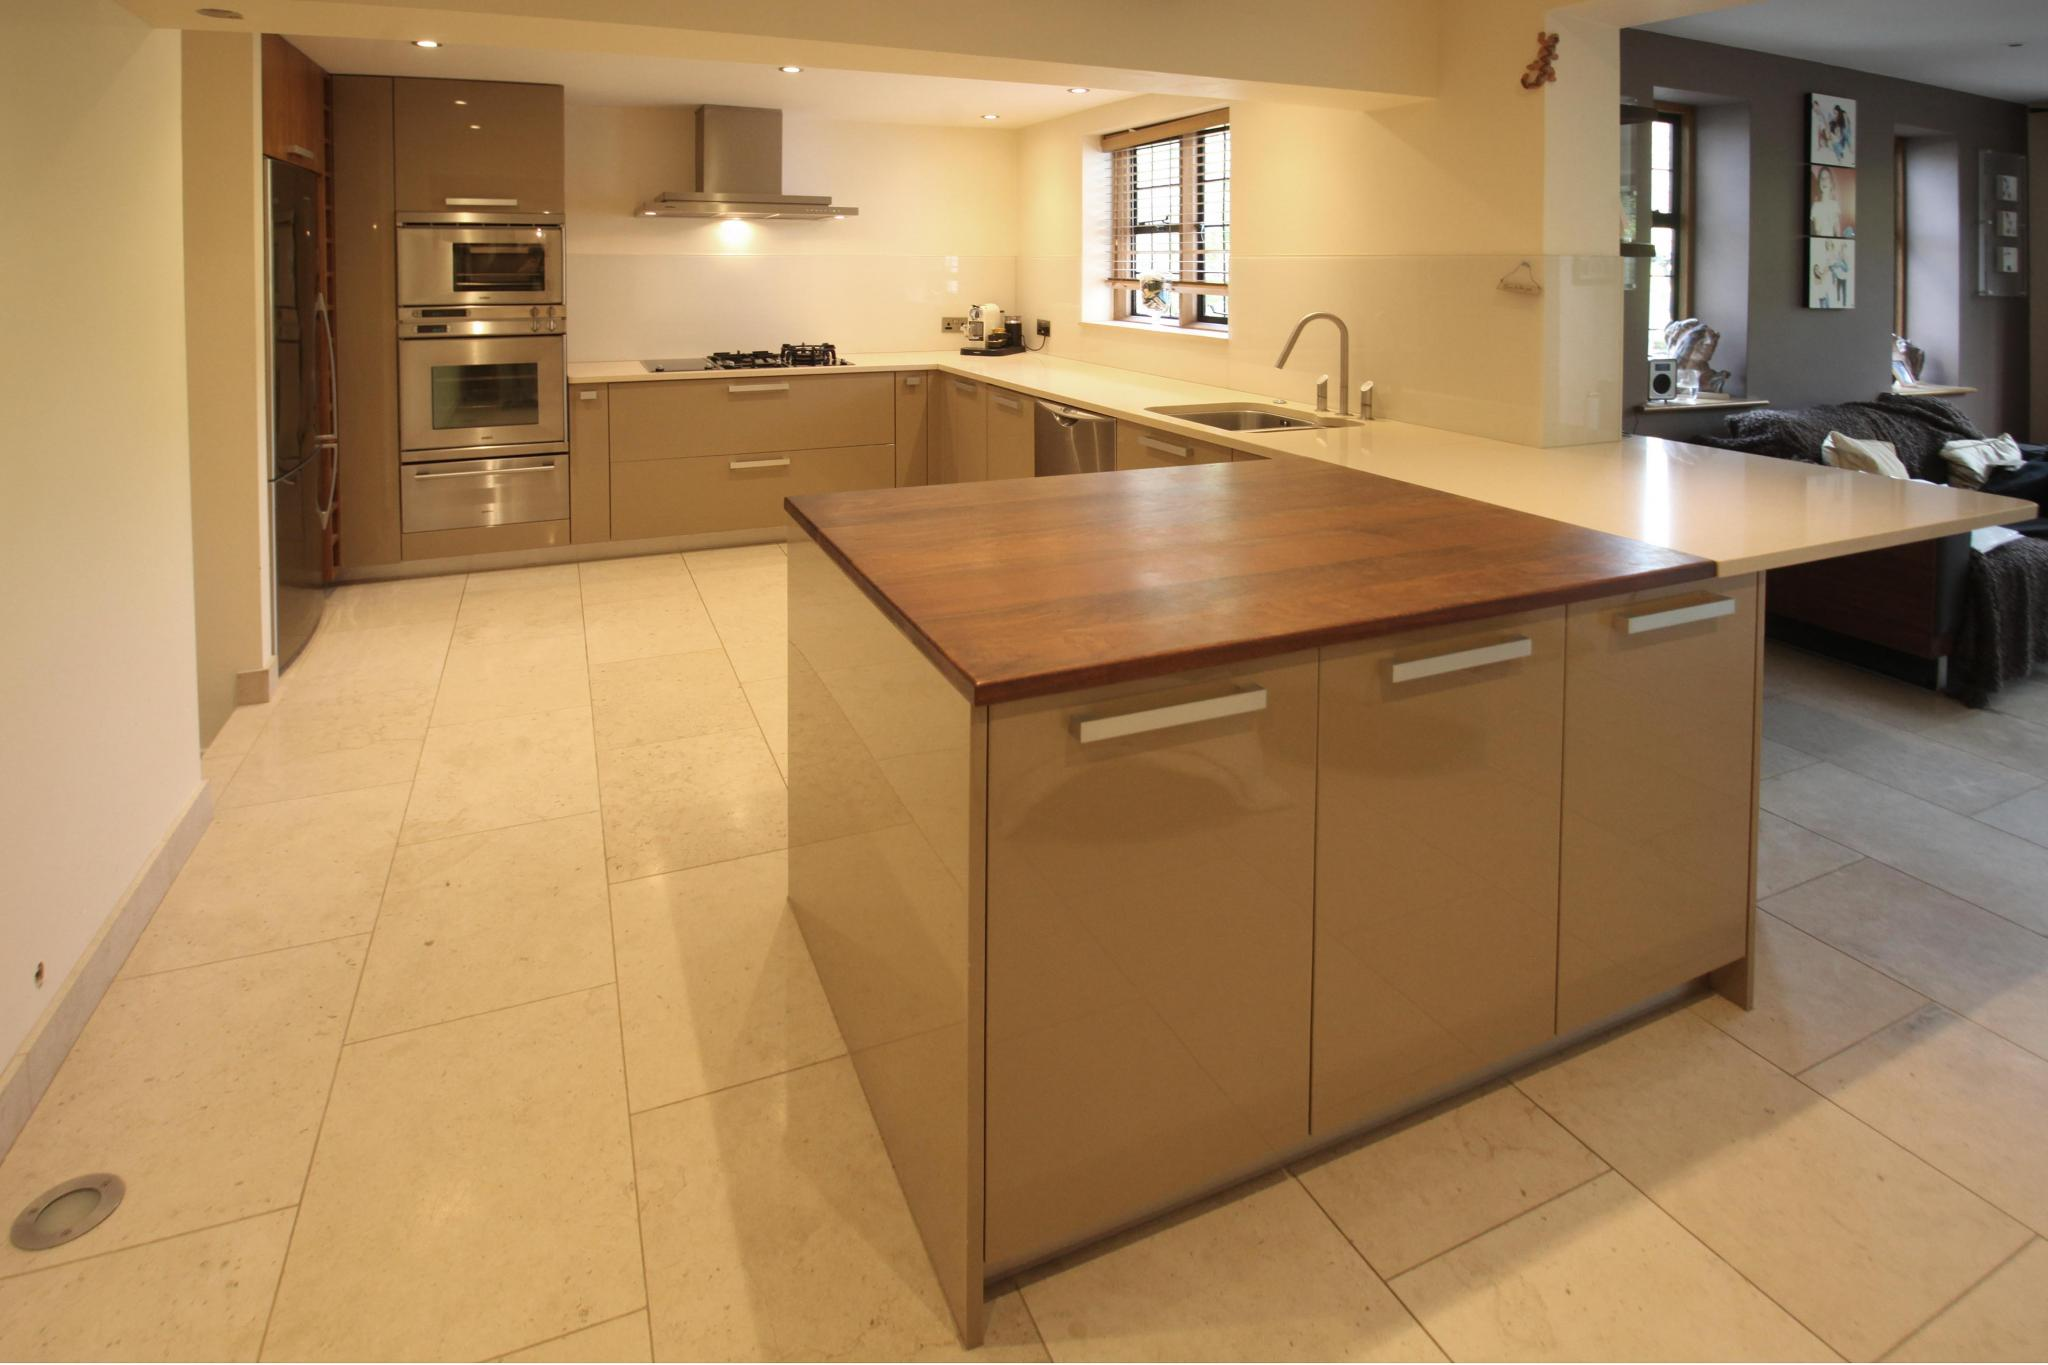 EUROMOBIL High Gloss Used Kitchen Full View